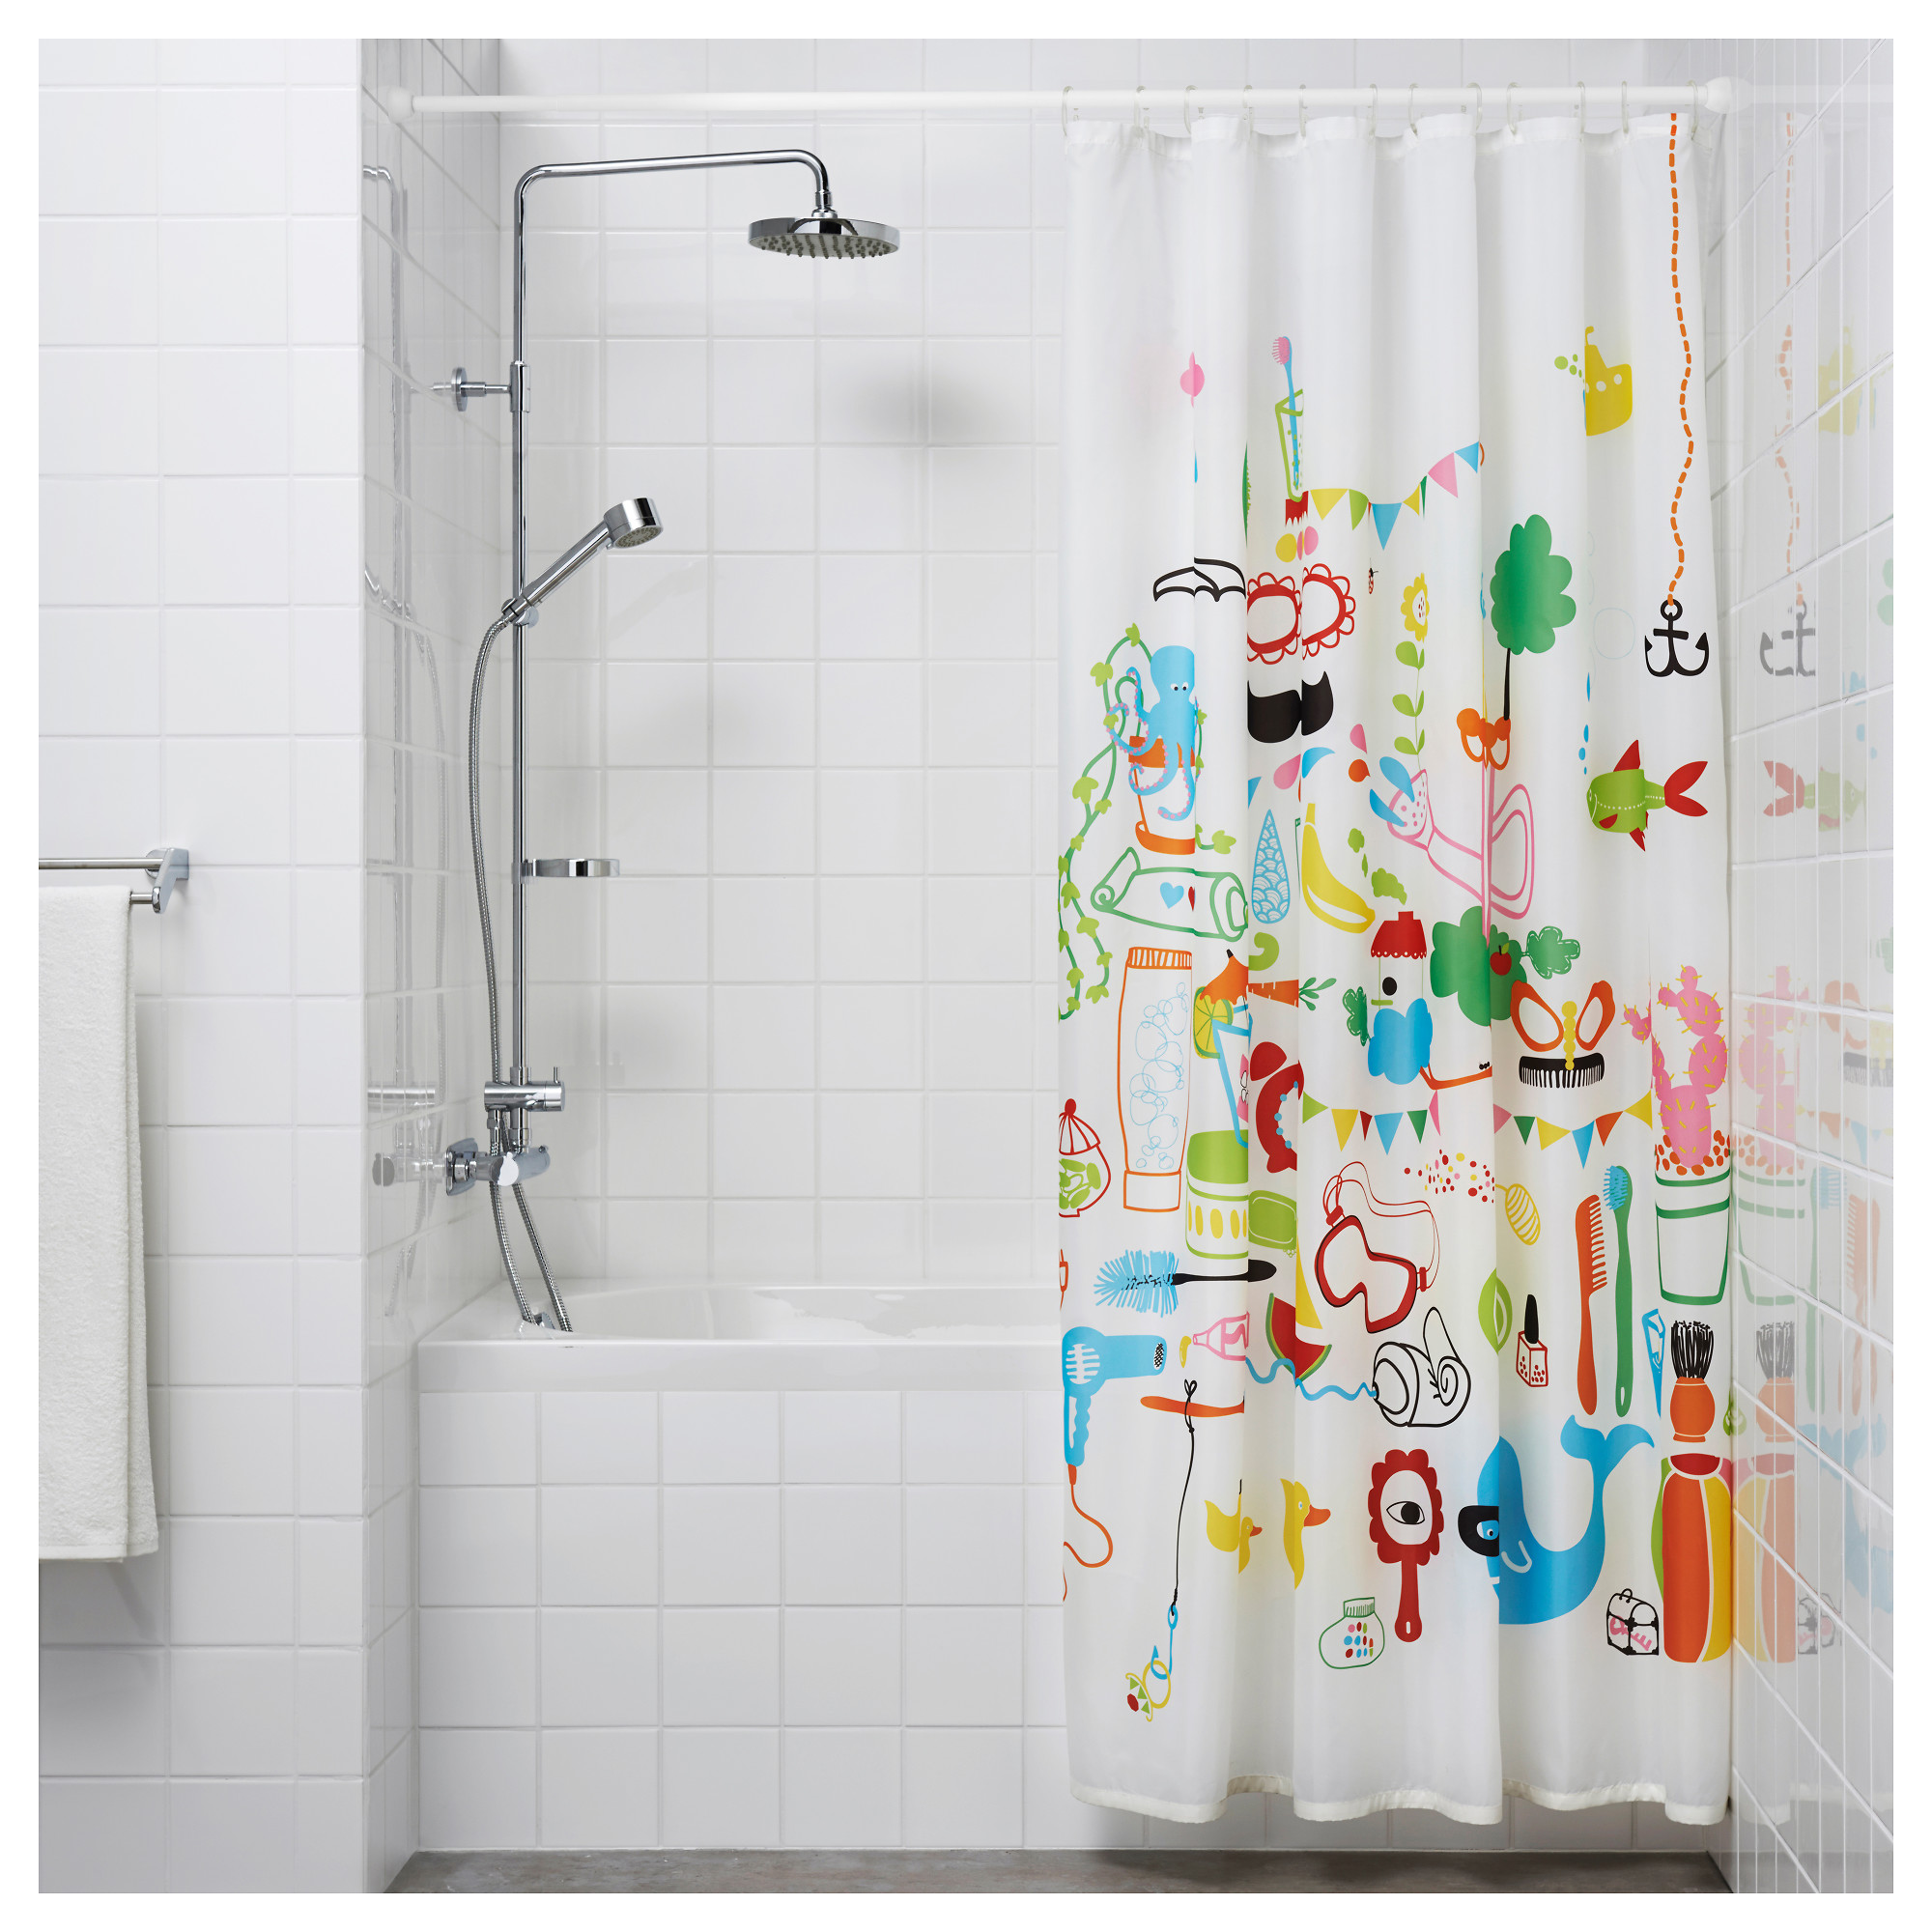 Ikea Shower Curtain | Neon Shower Curtain | Cheap Shower Curtains